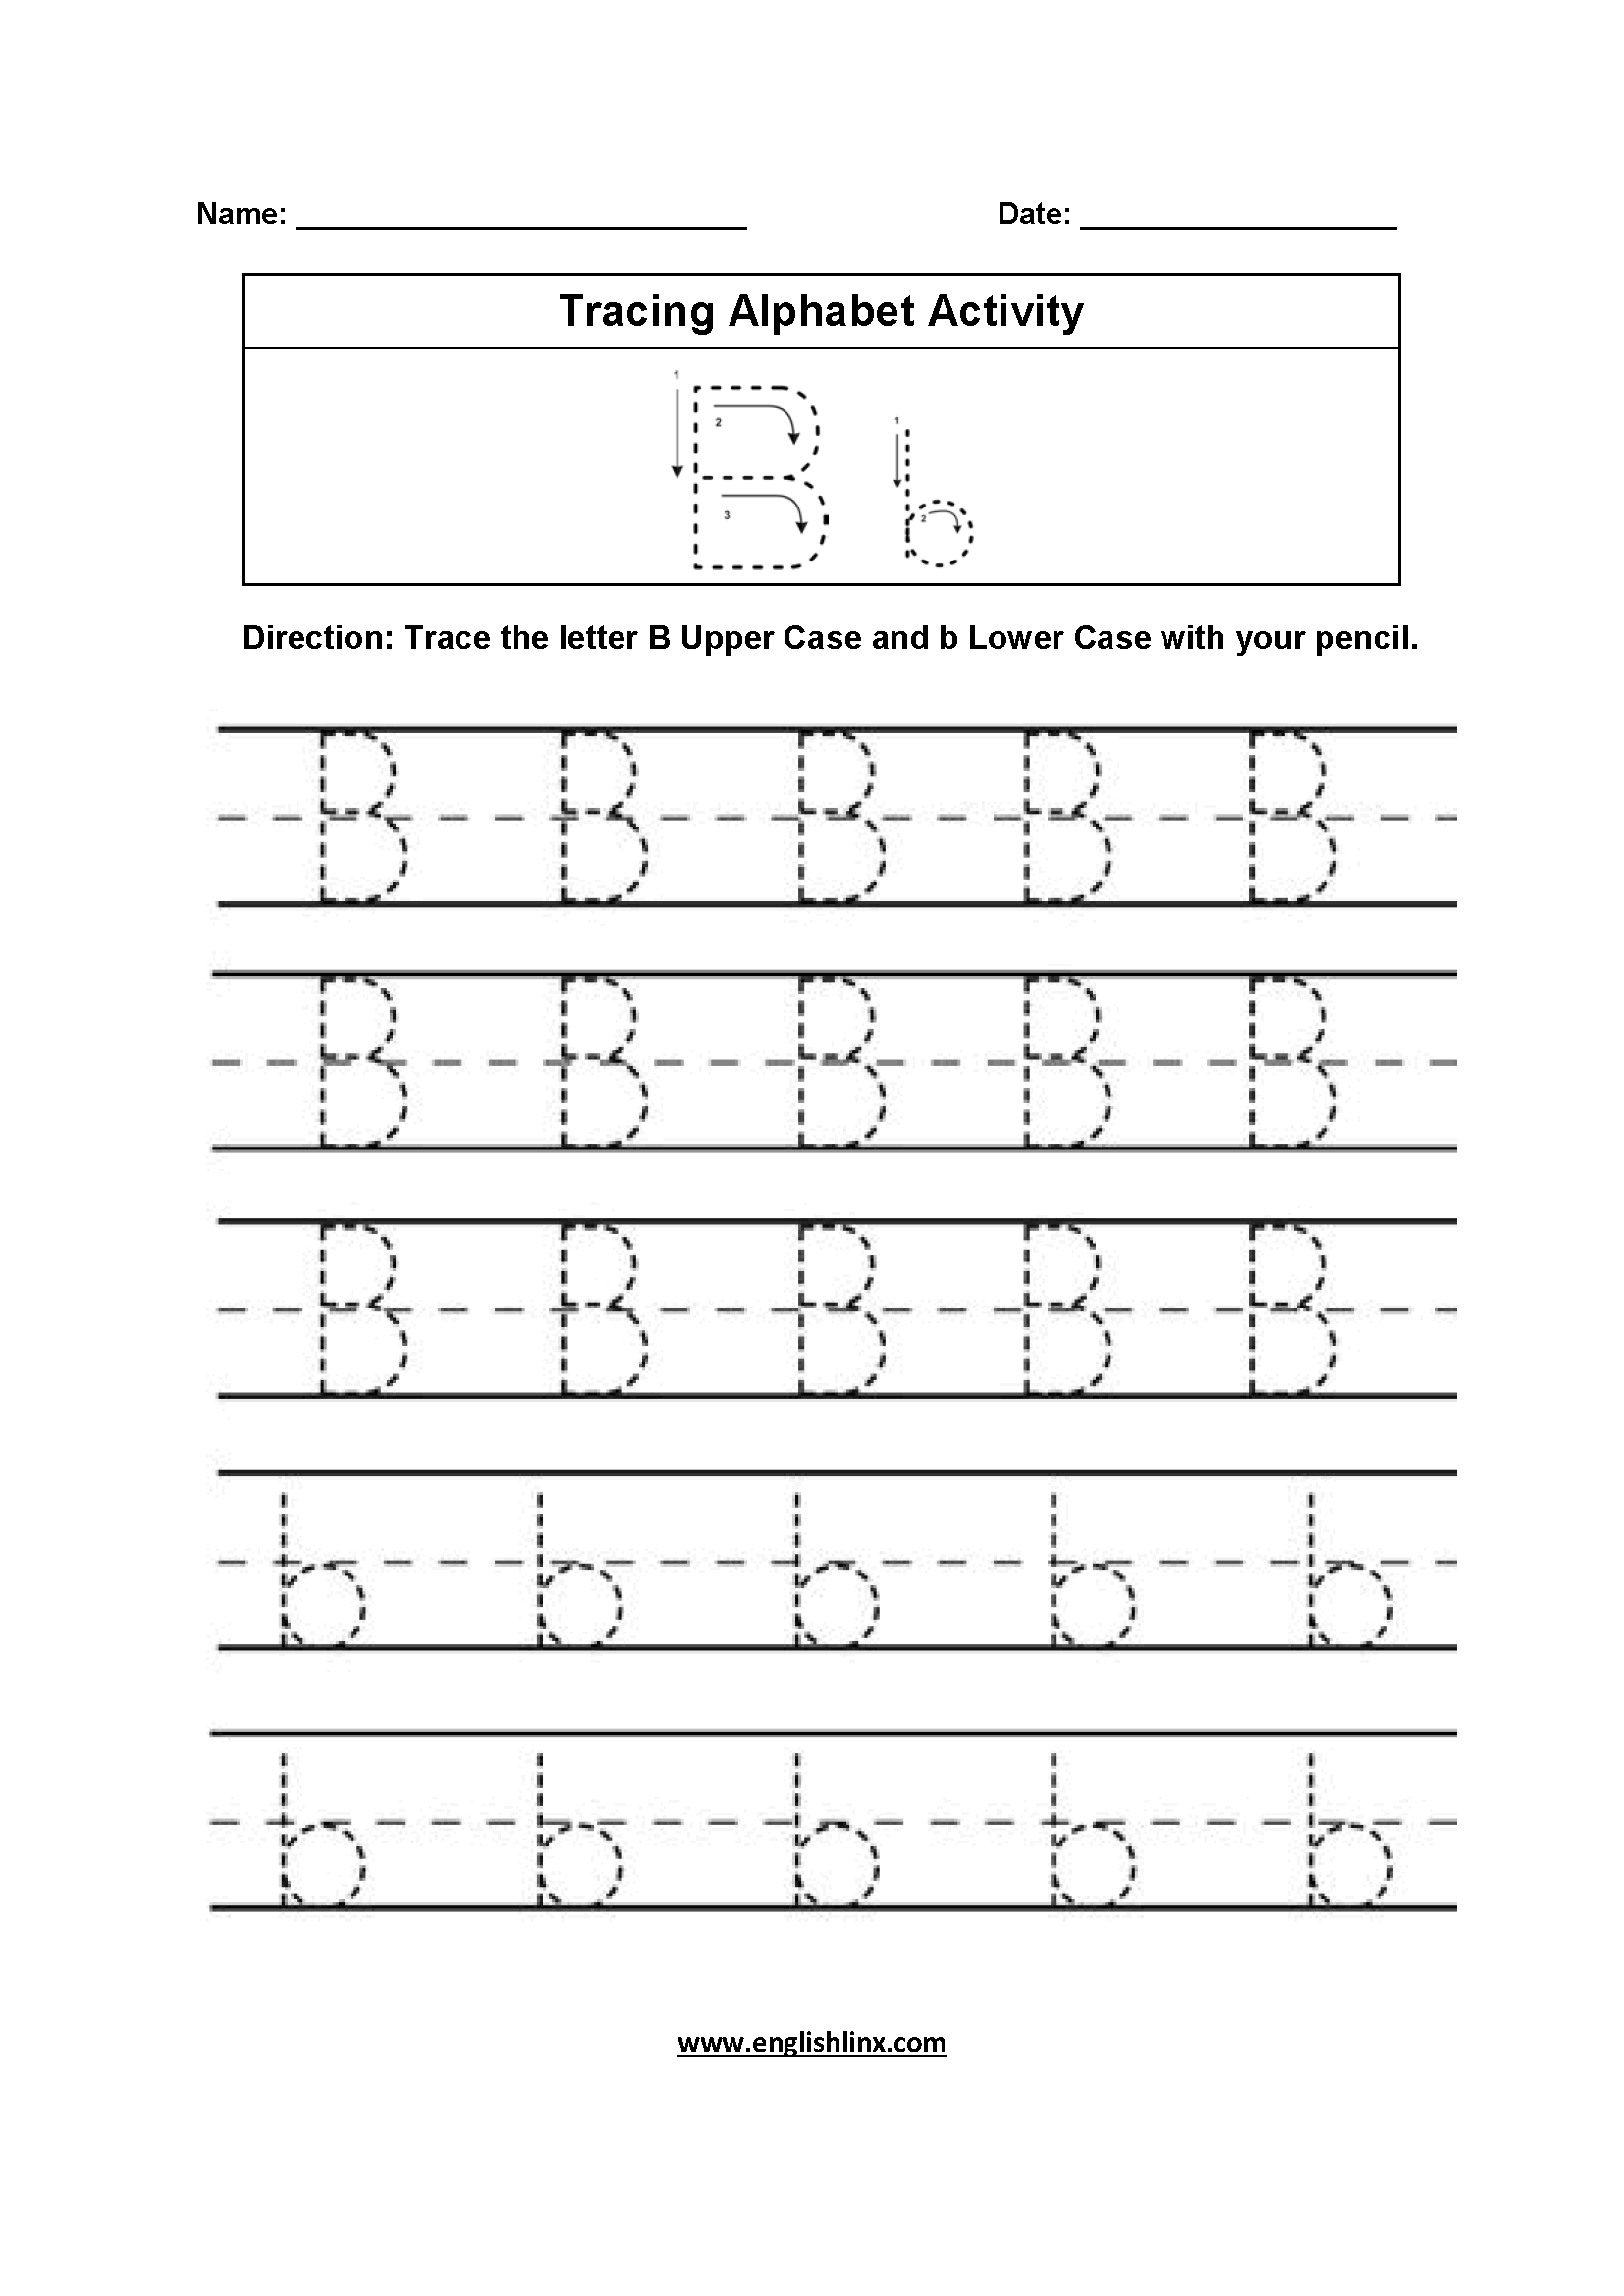 Alphabet Worksheets | Tracing Alphabet Worksheets with Alphabet Tracing A-Z Pdf